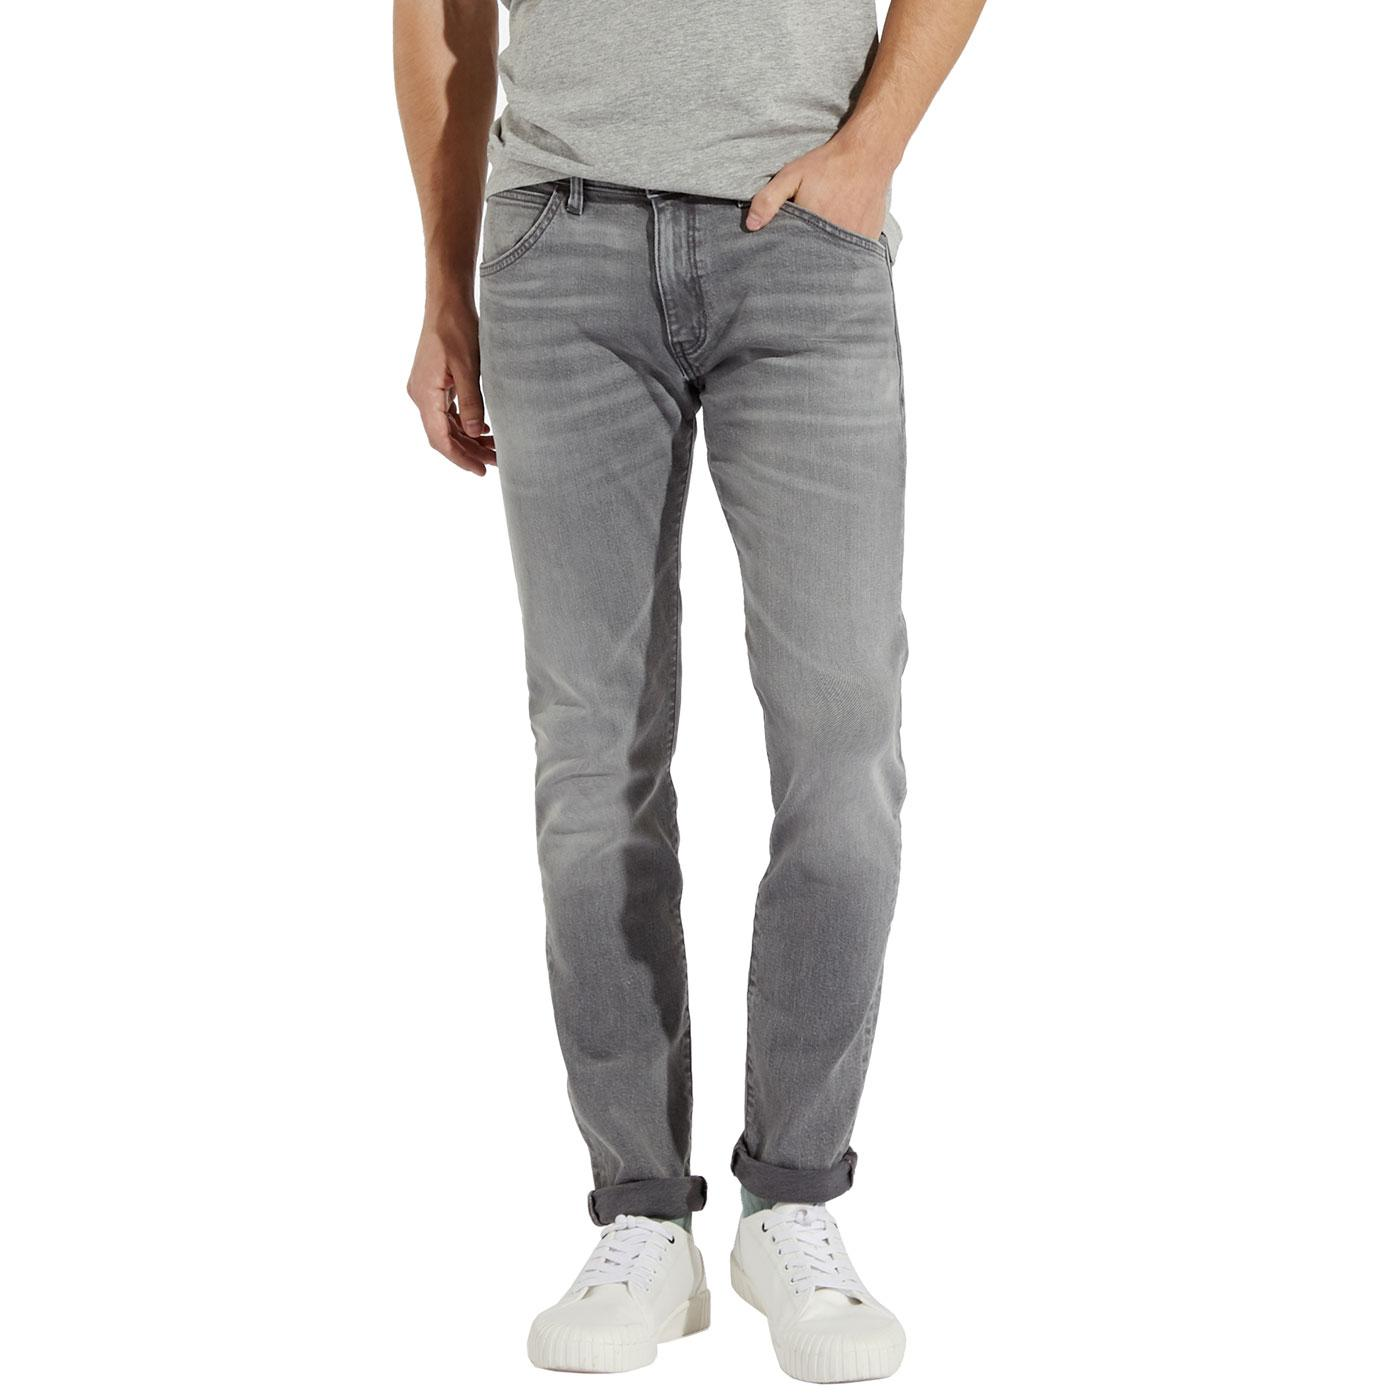 Bryson WRANGLER Retro Skinny Denim Jeans IRON FIST